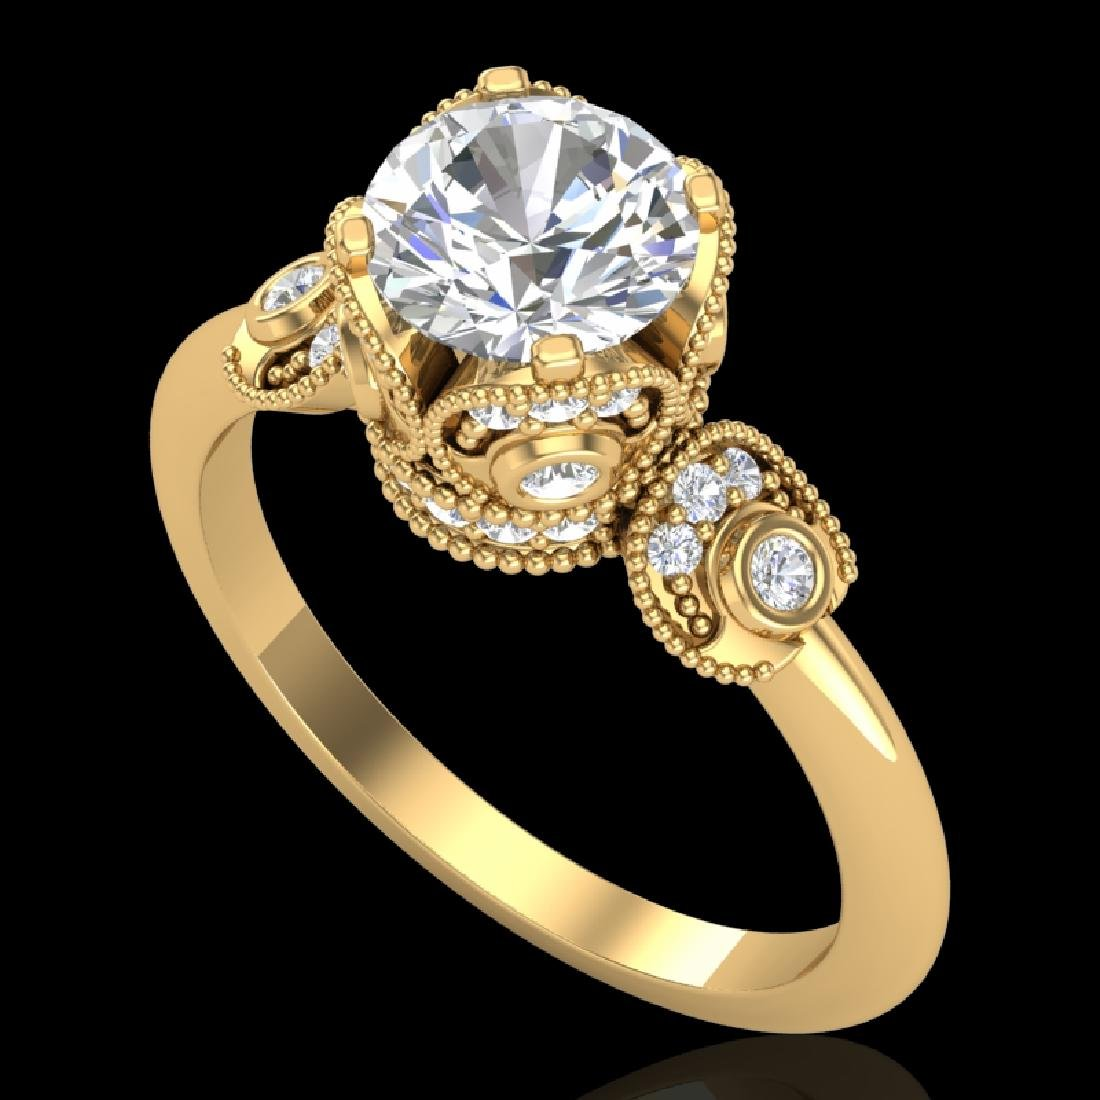 1.75 CTW VS/SI Diamond Art Deco Ring 18K Yellow Gold